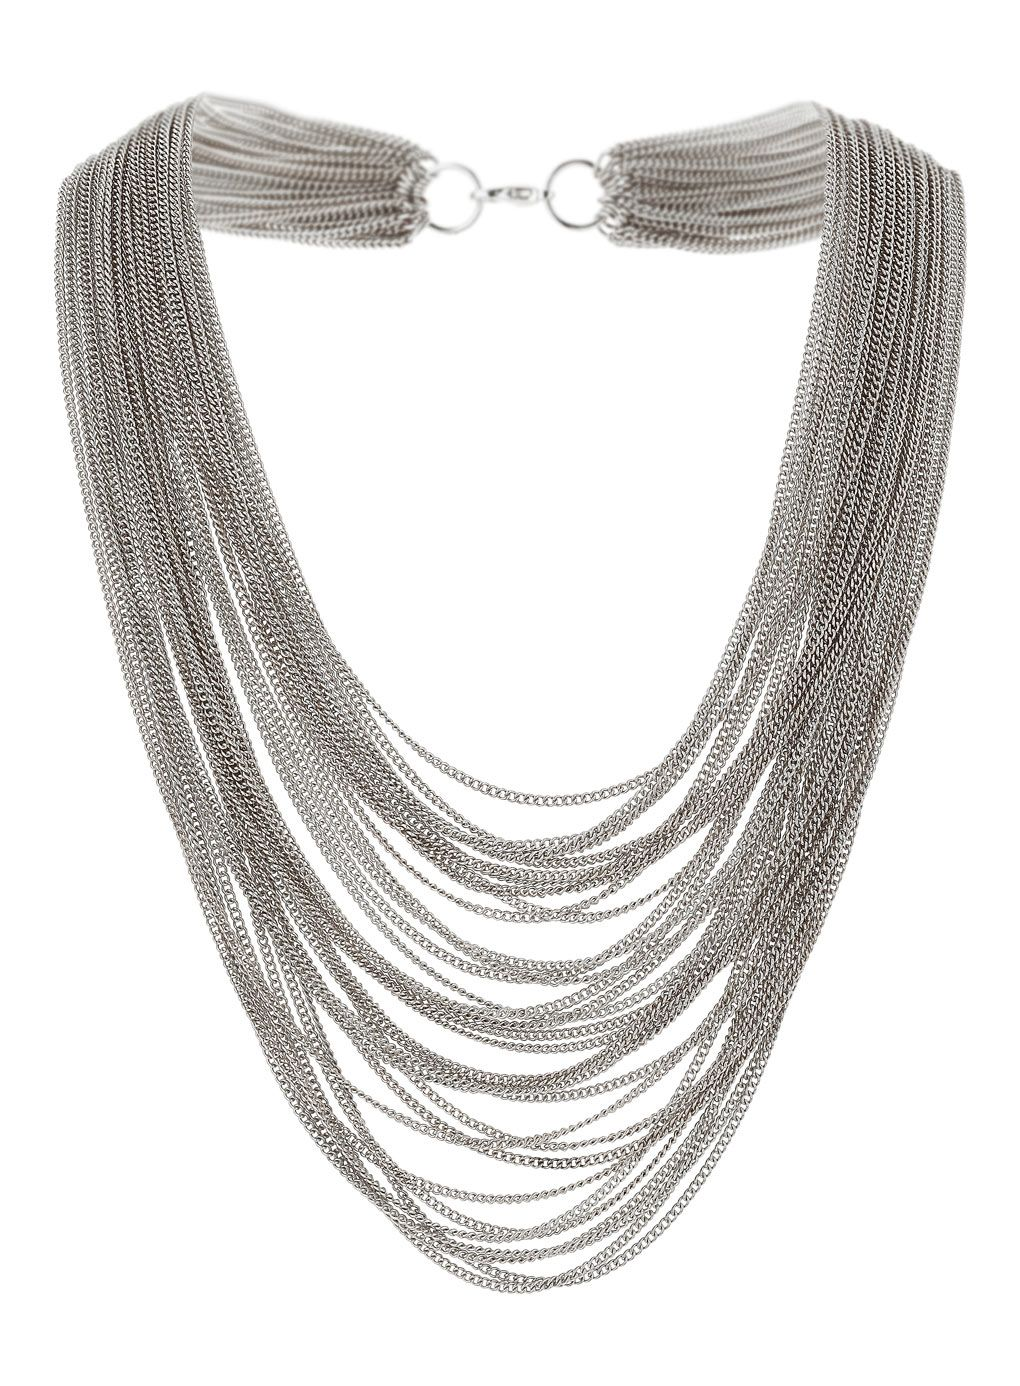 Silver tone multi row fine chain necklace.